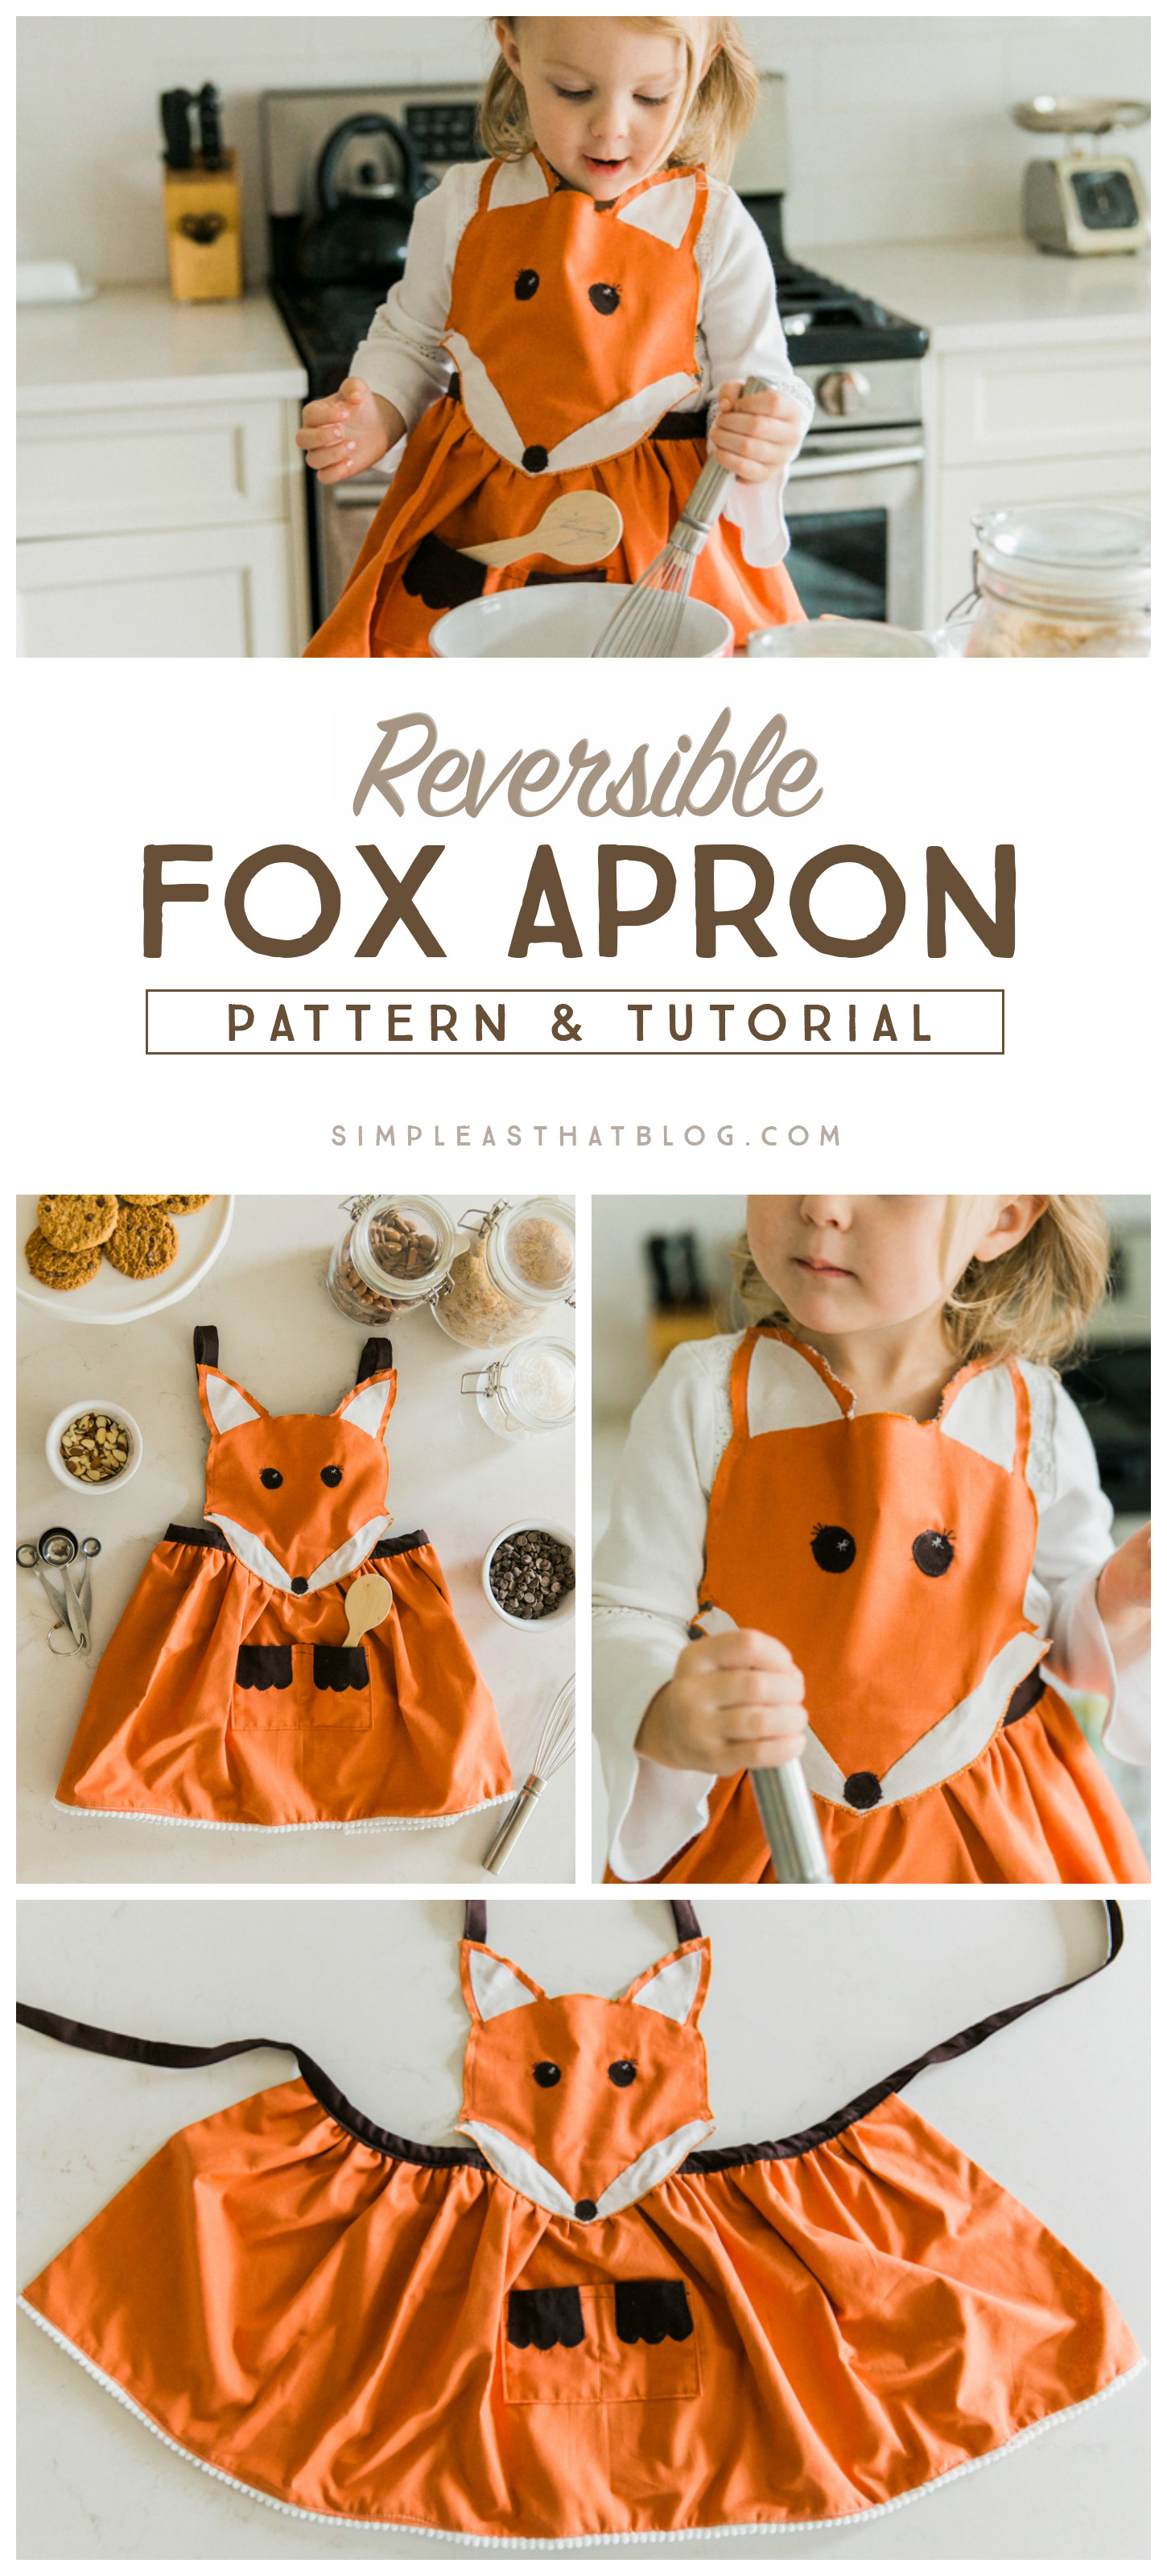 FREE pattern and instructions to make this adorable Fox Apron.